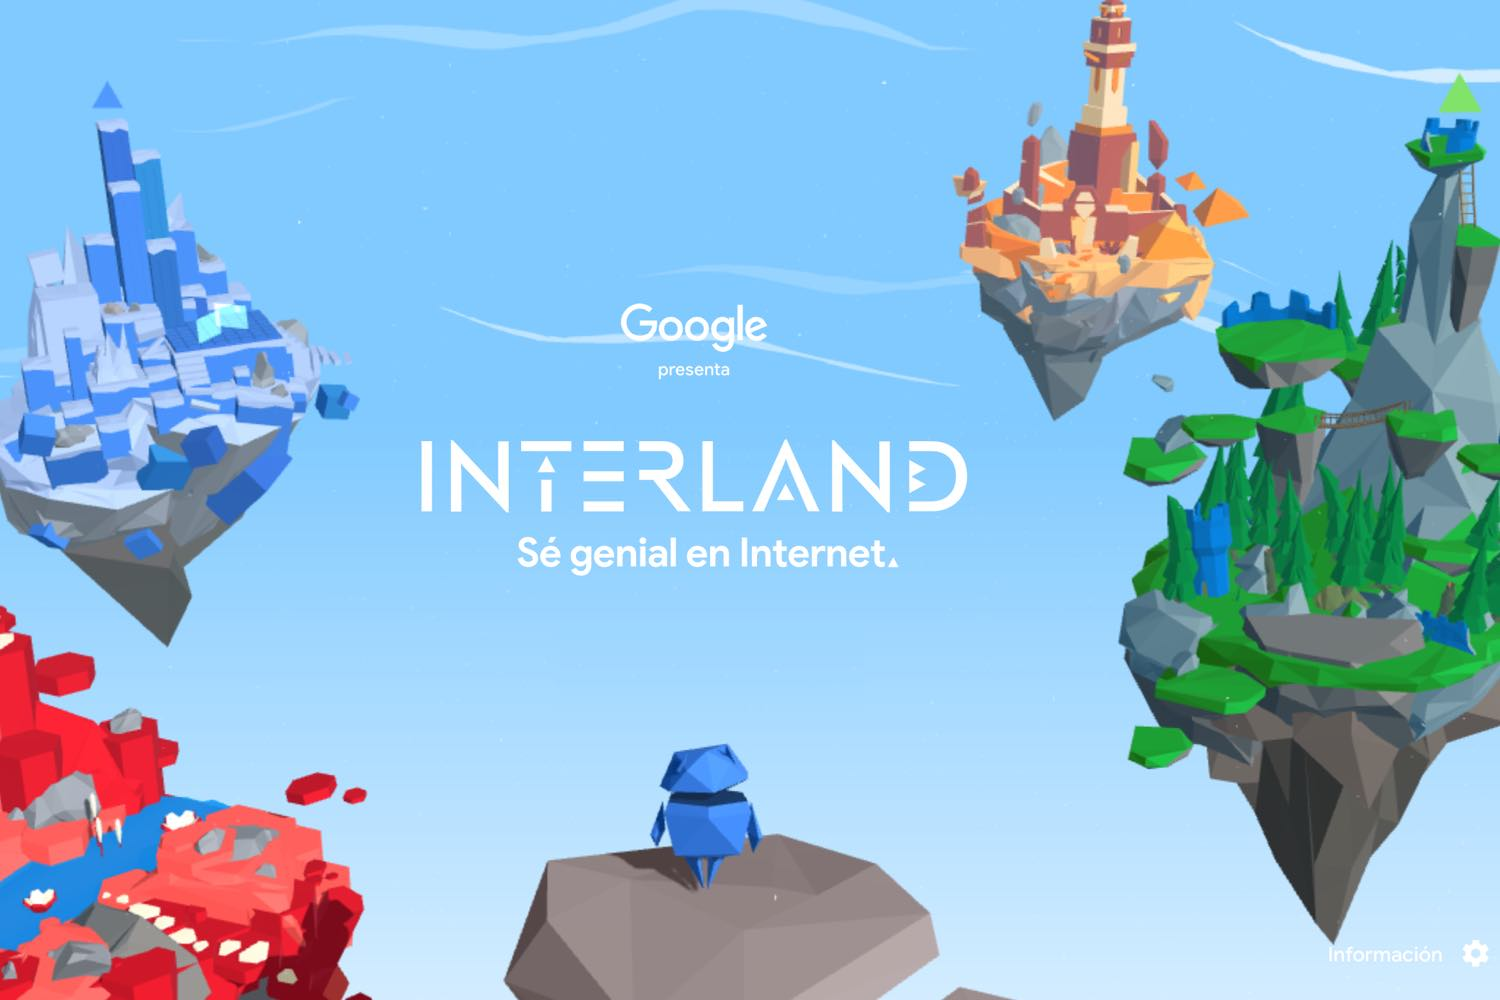 interland, interland google, interland juego